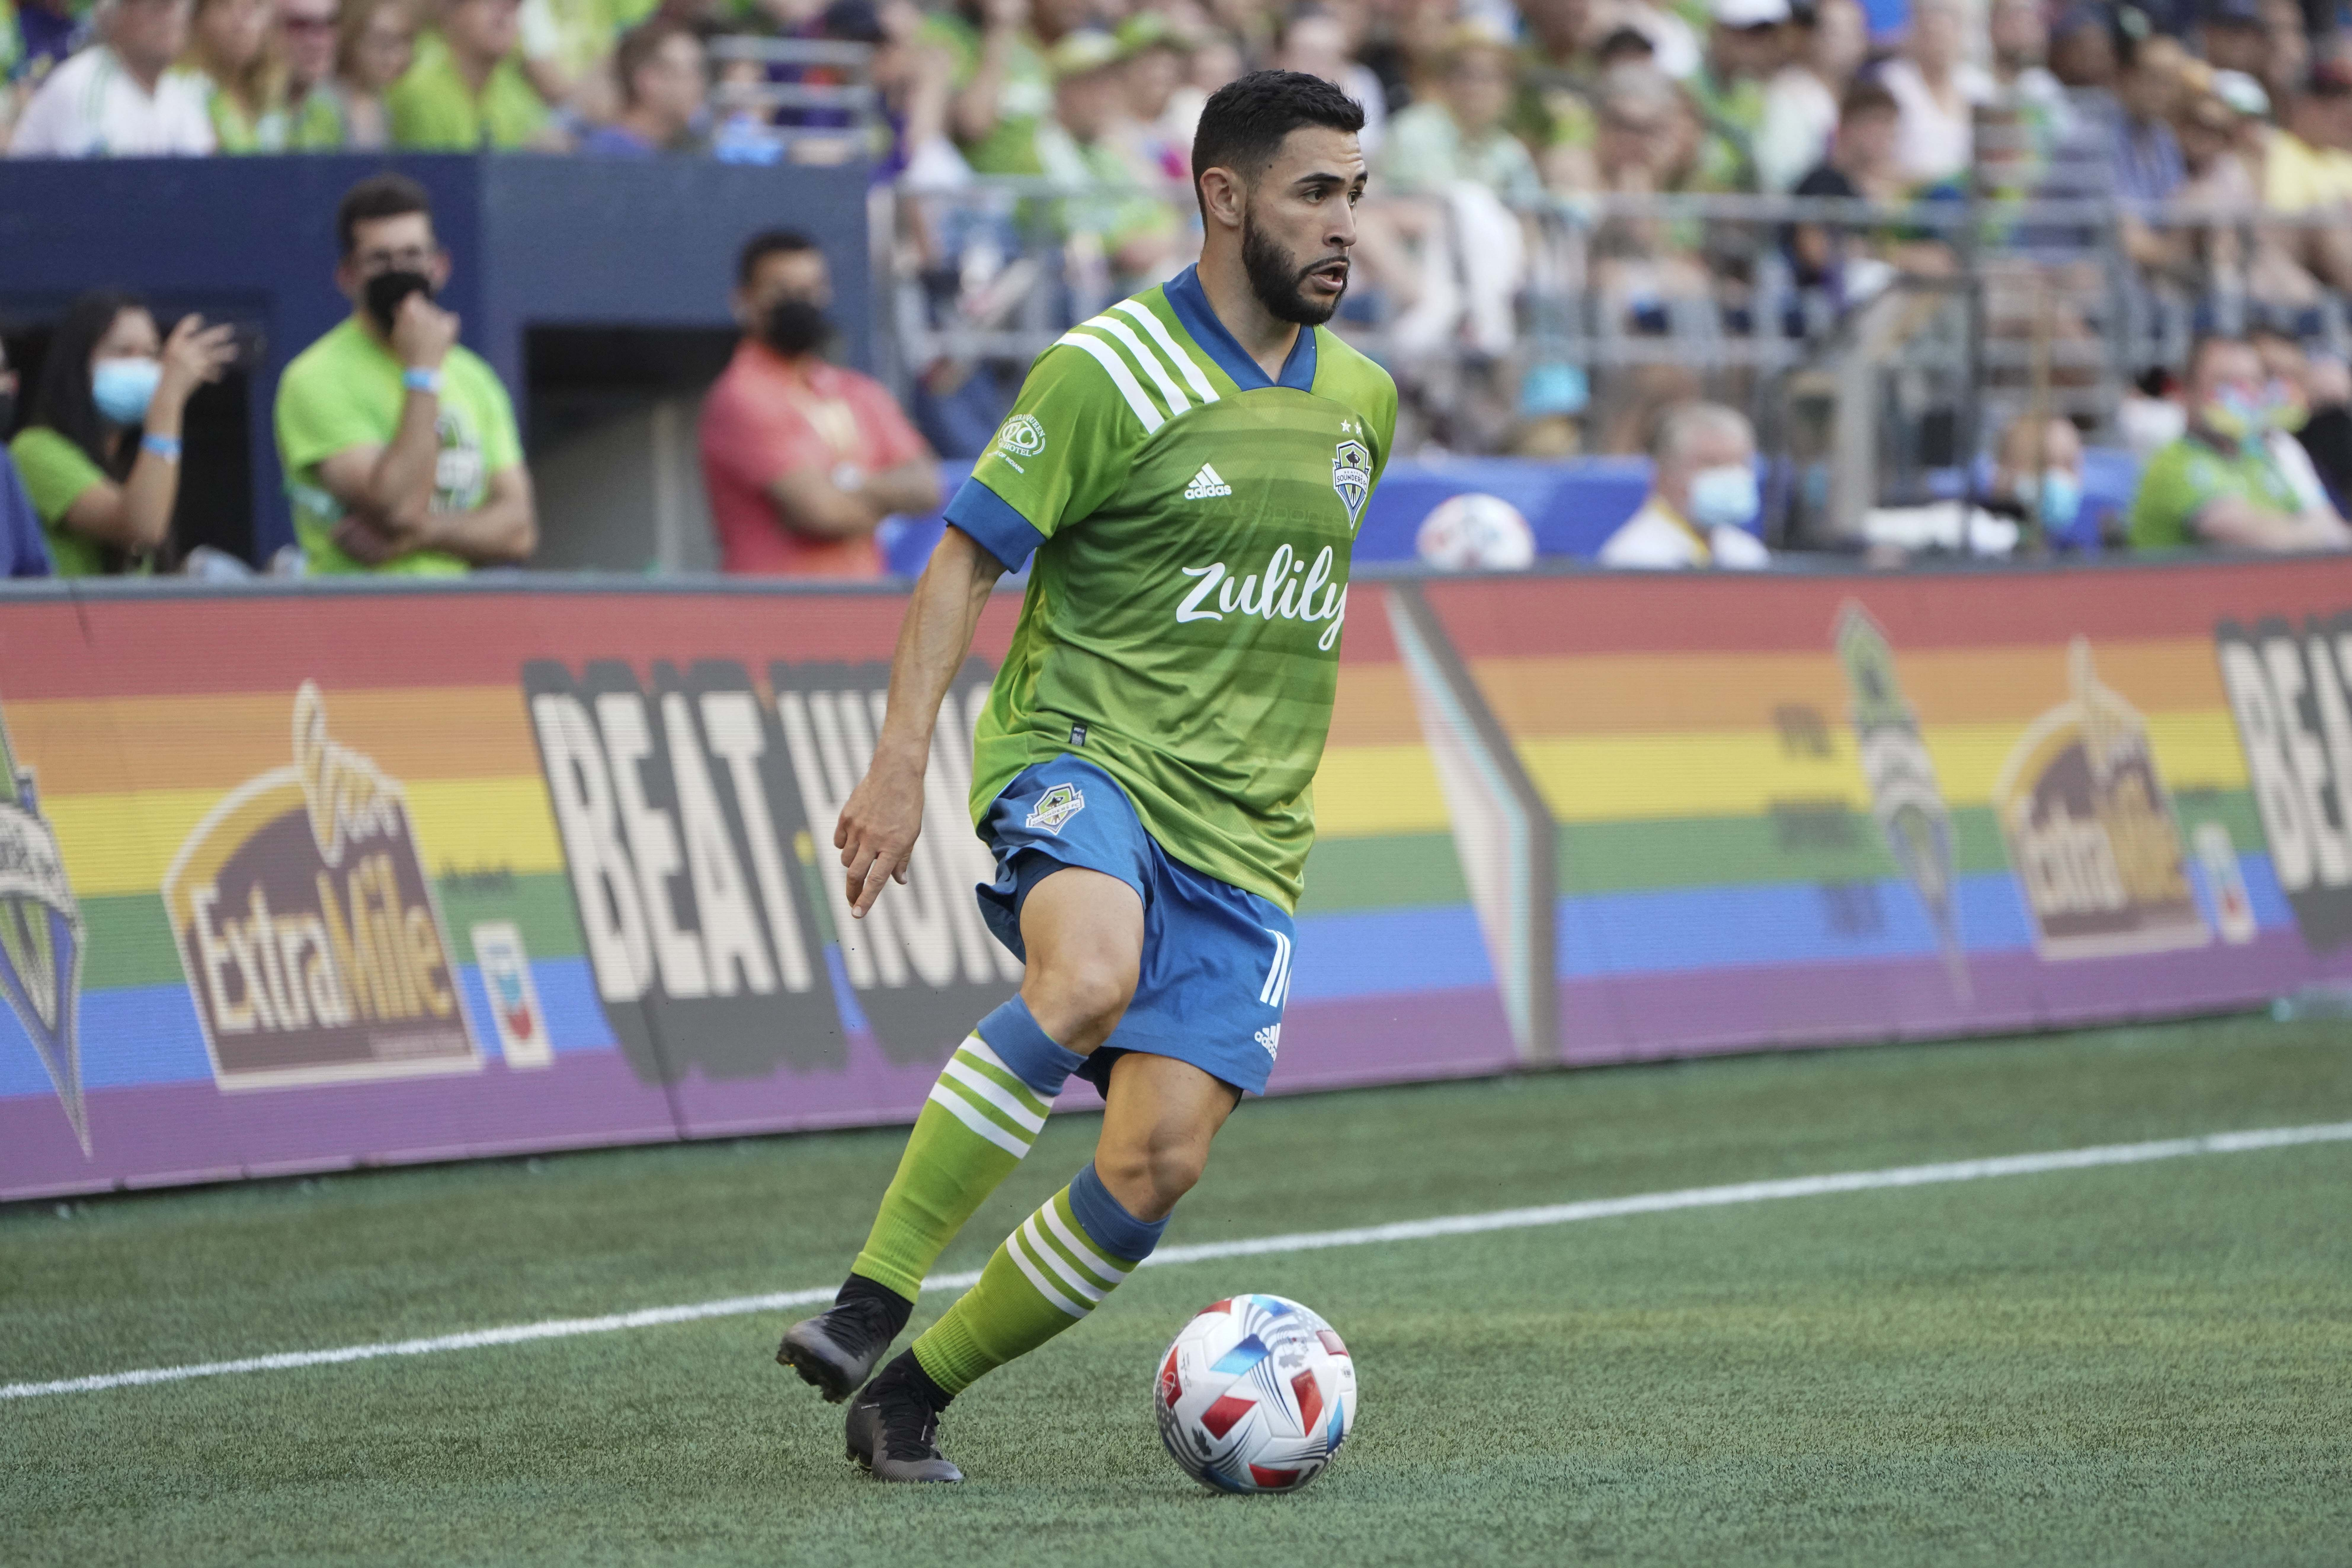 SOCCER: JUN 26 MLS - Vancouver Whitecaps at Seattle Sounders FC